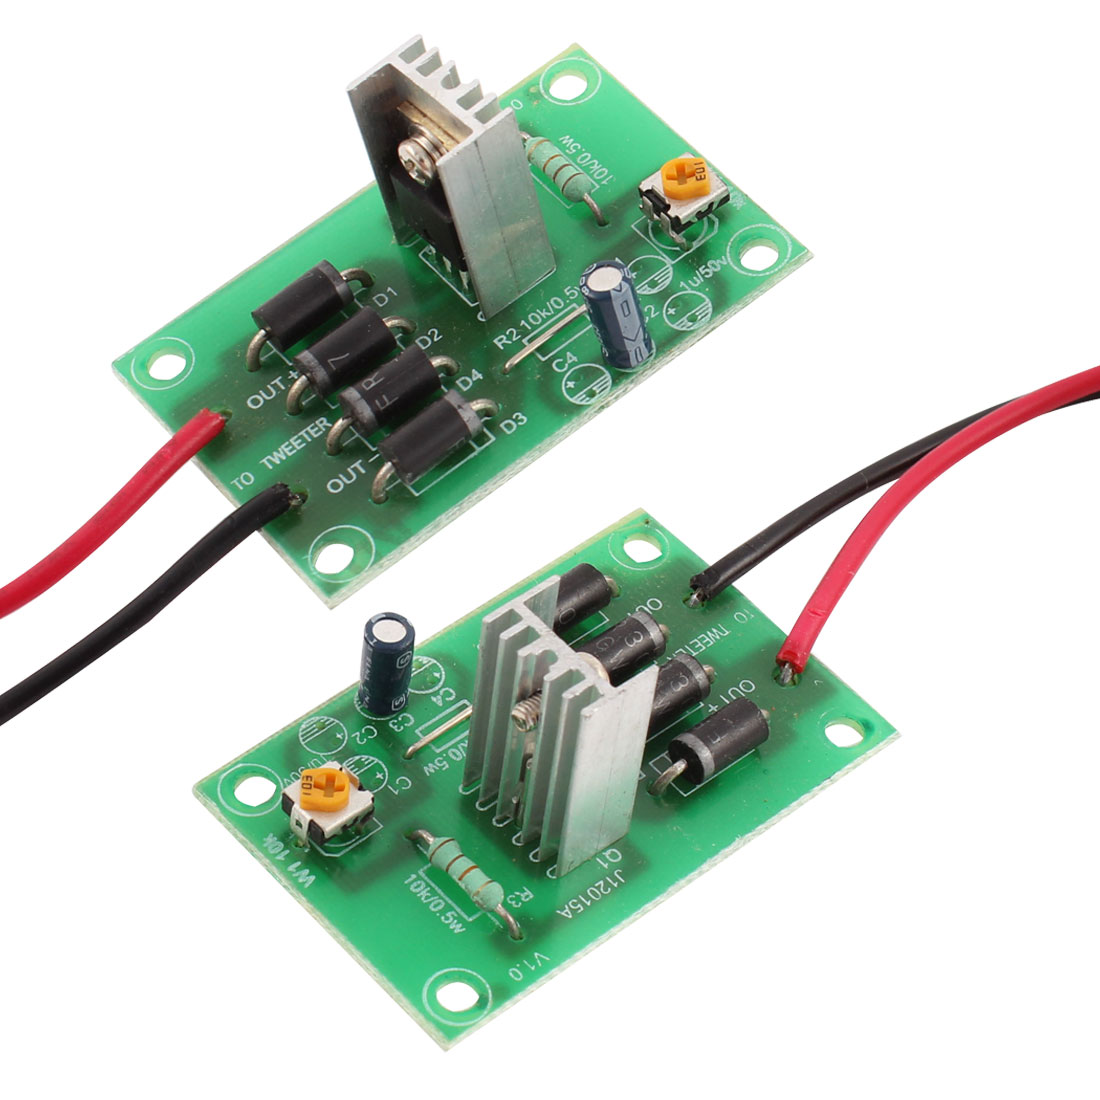 2 x Hight Power Speaker Audio Systerm Protective Protection Circuit Board for Car